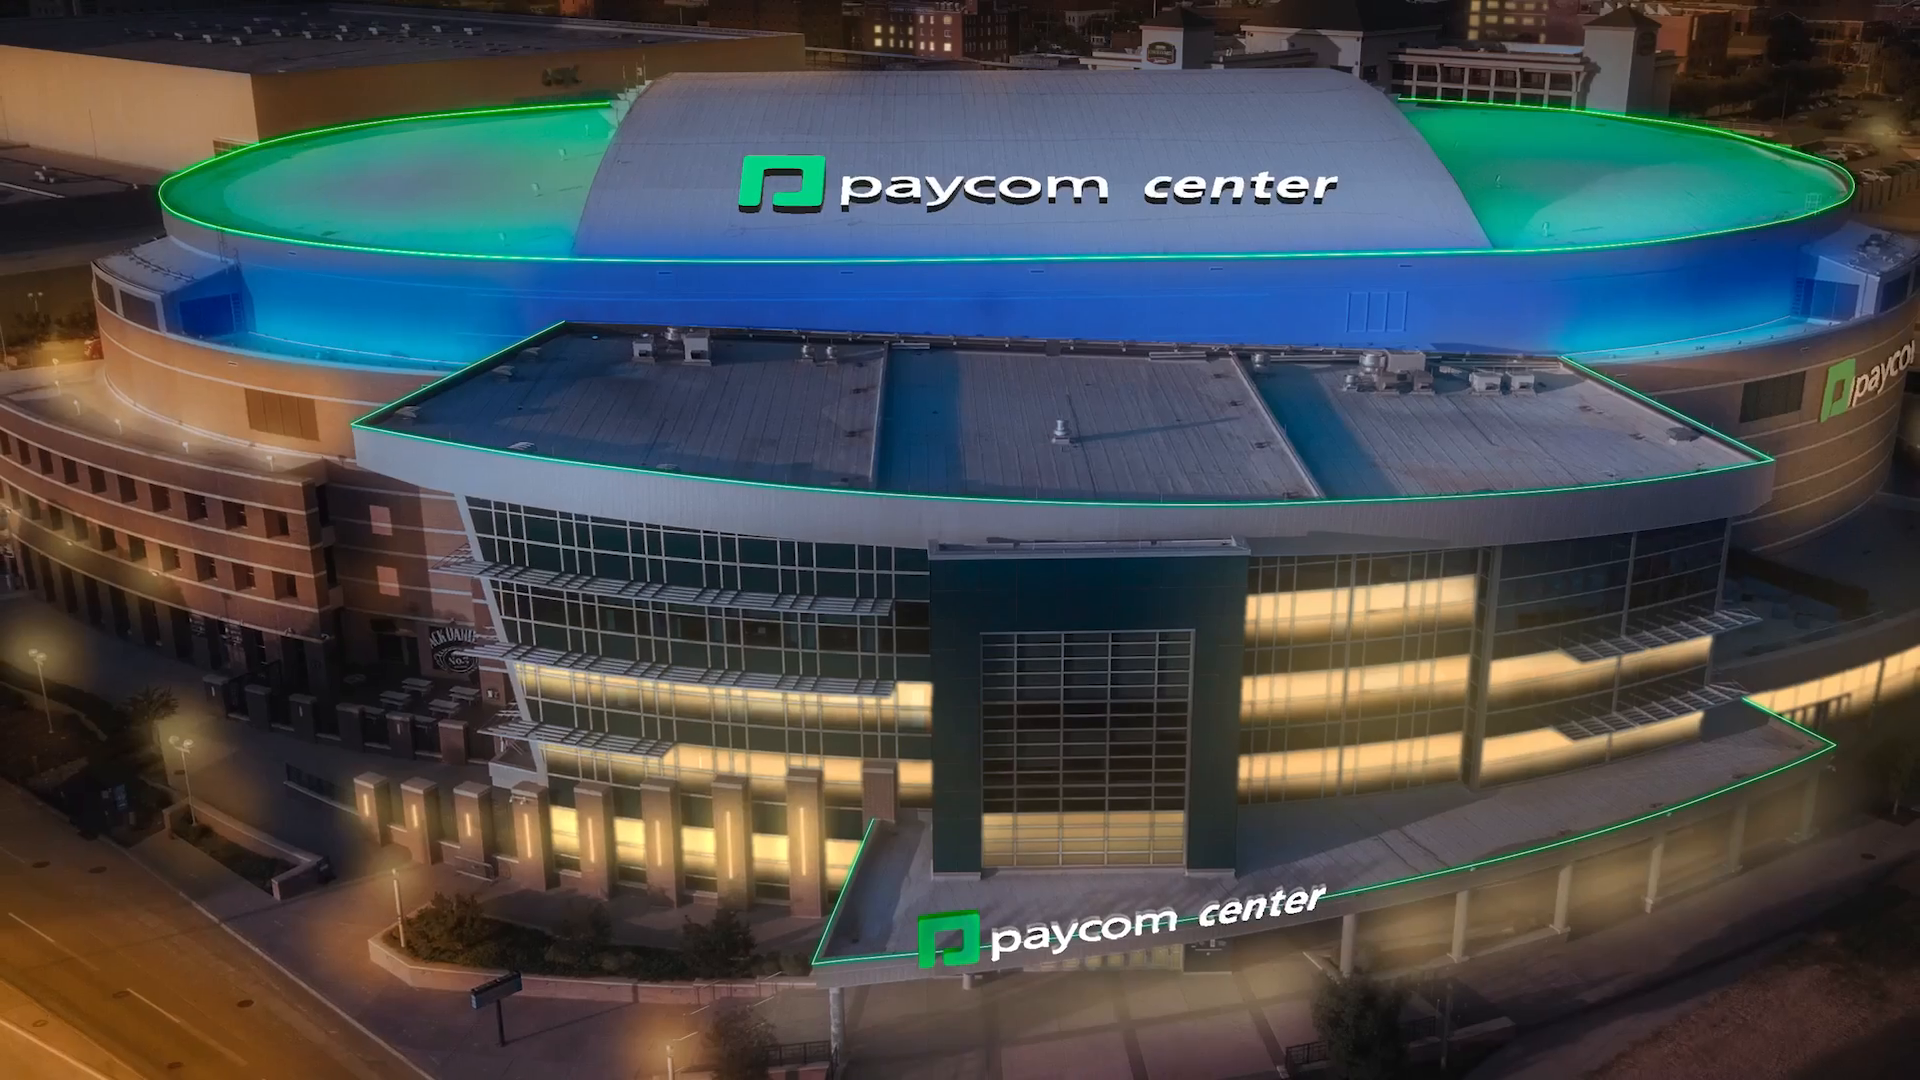 Two Partners, One City. Welcome to Paycom Center